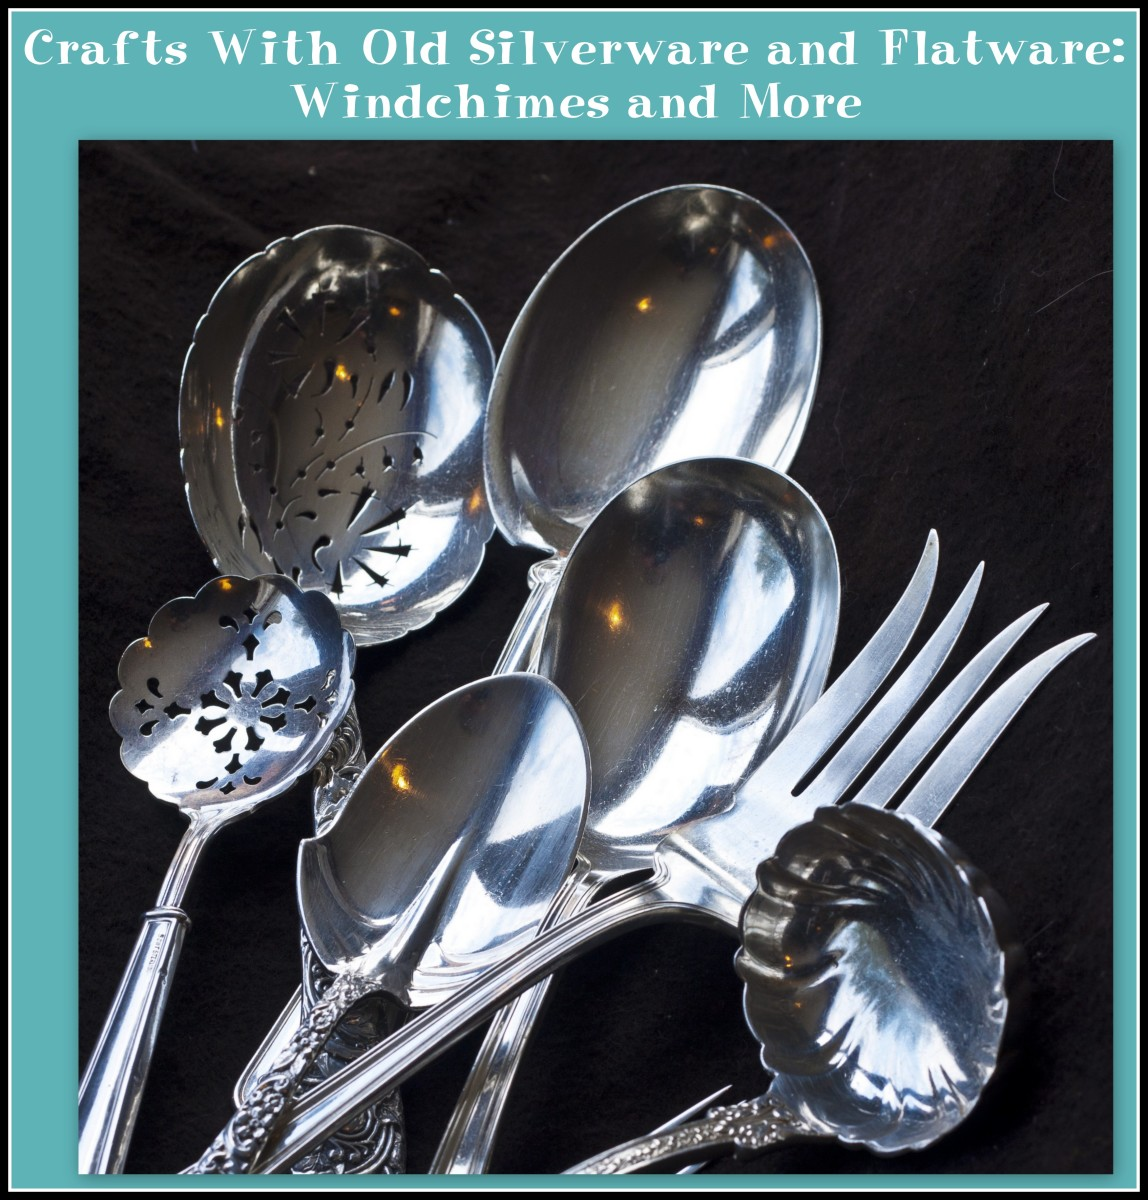 how-to-make-crafts-with-old-silverware-flatware-windchimes-and-more